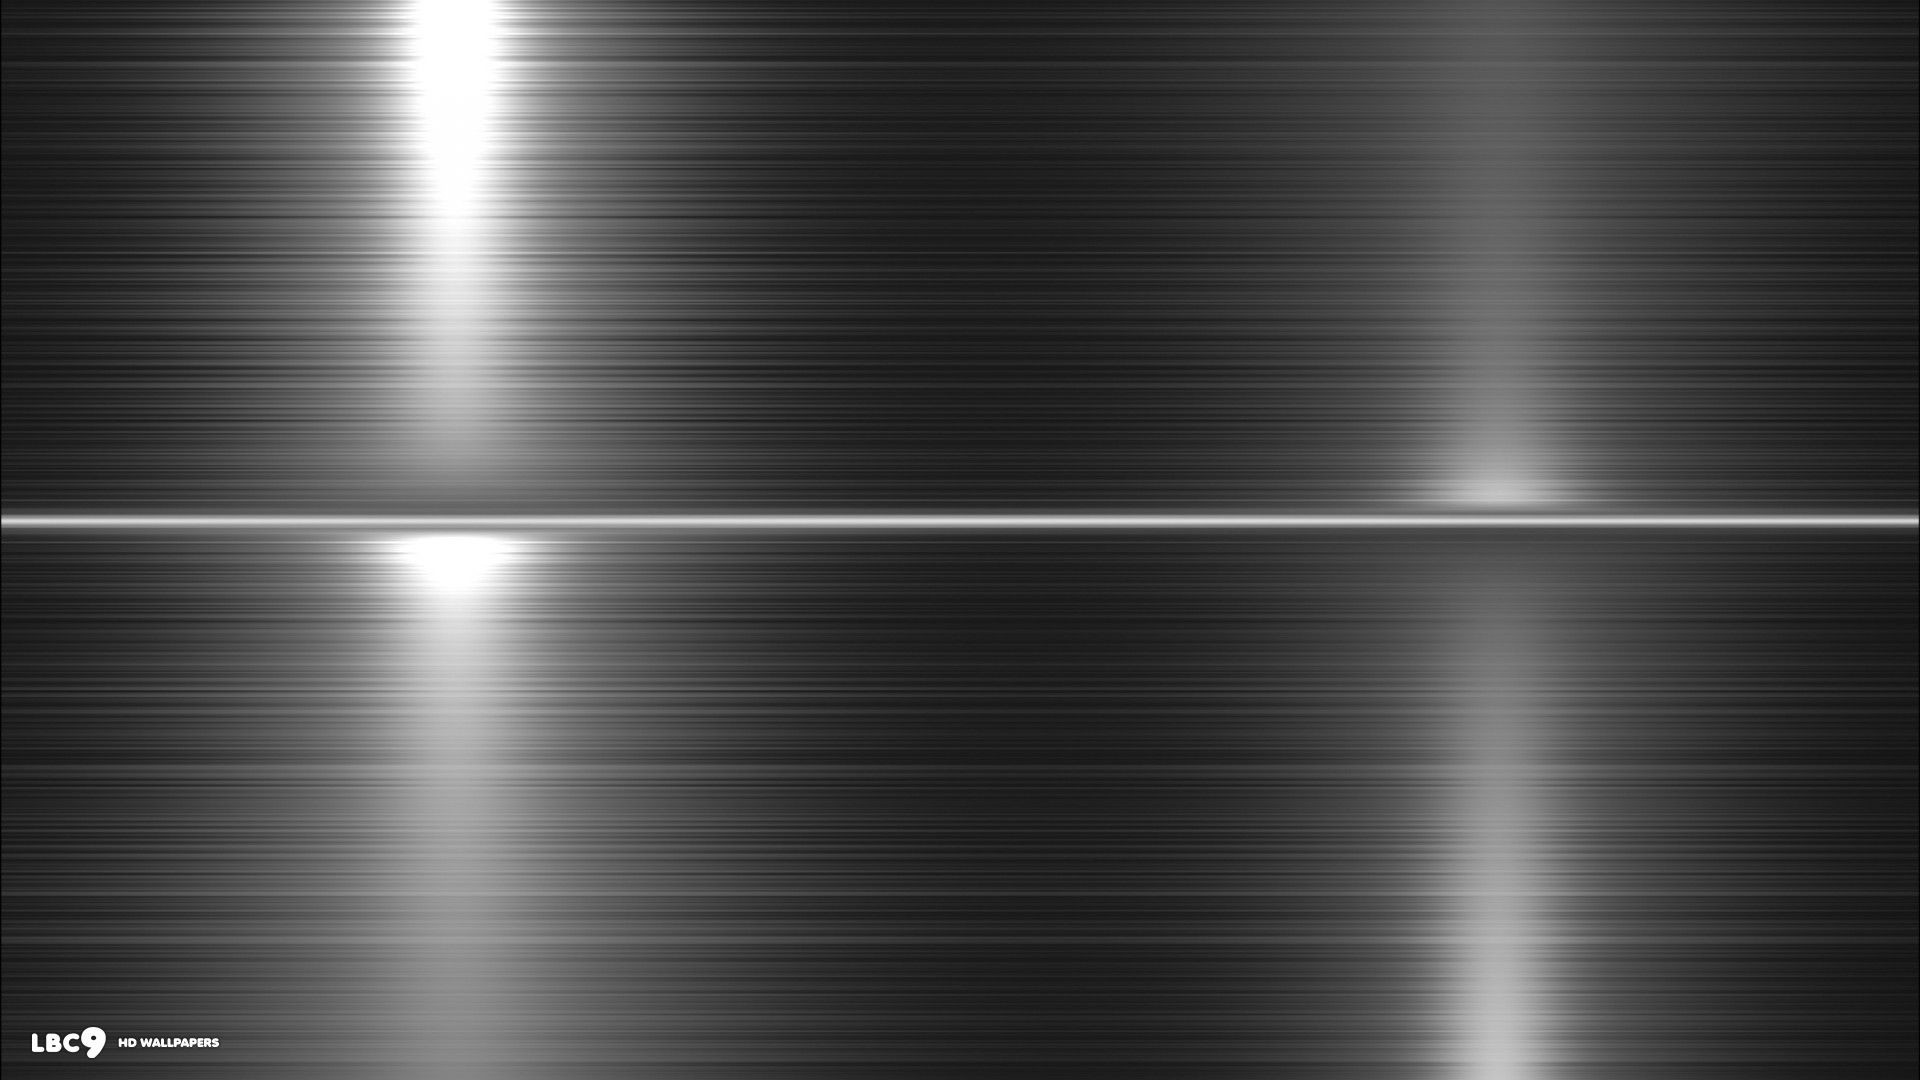 Black Silver HD Wallpaper (68+ images)